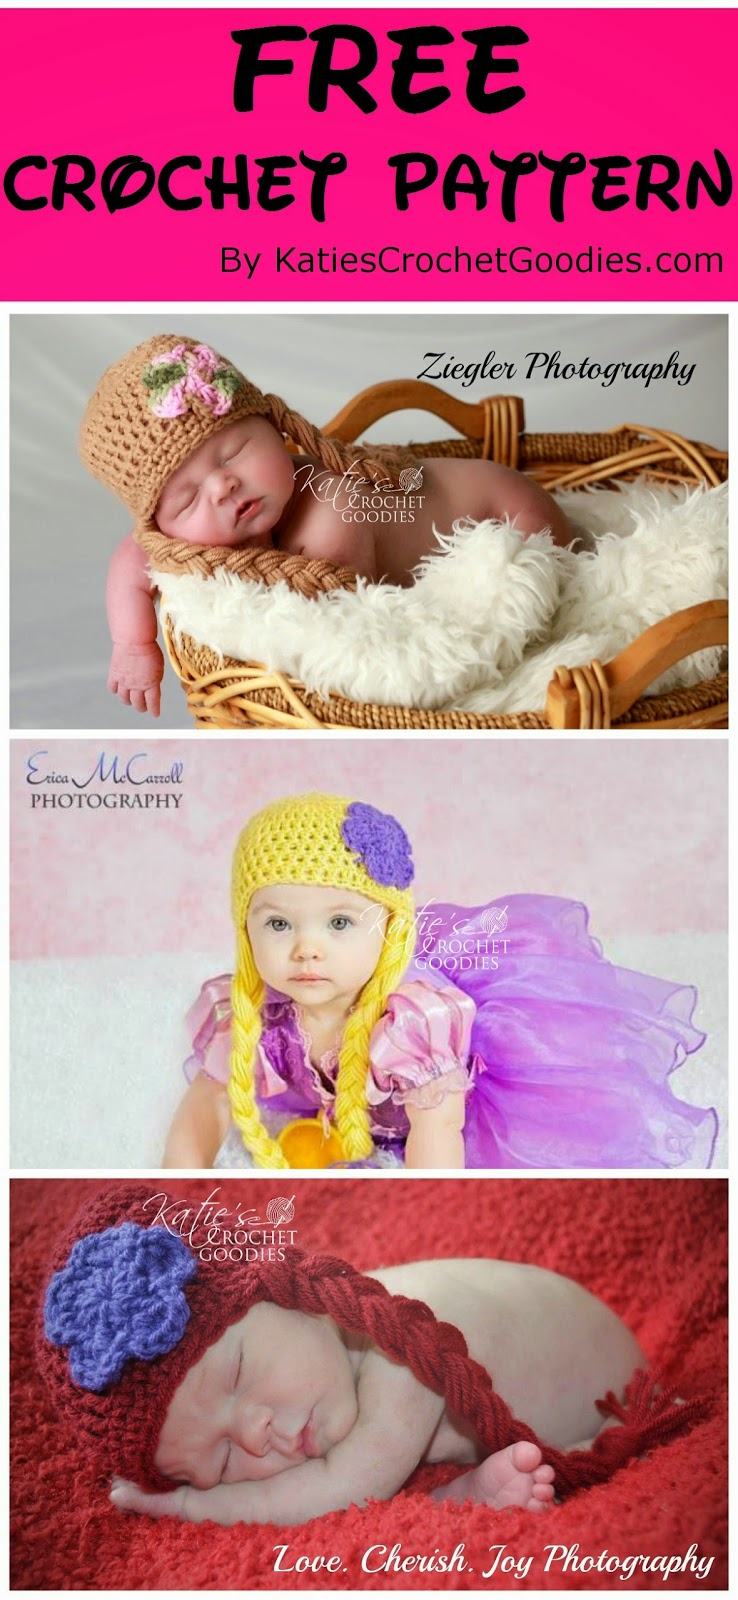 Free Crochet Patterns For Disney Hats : Free Frozen, Rapunzel, Disney Princess Crochet Hat Pattern ...